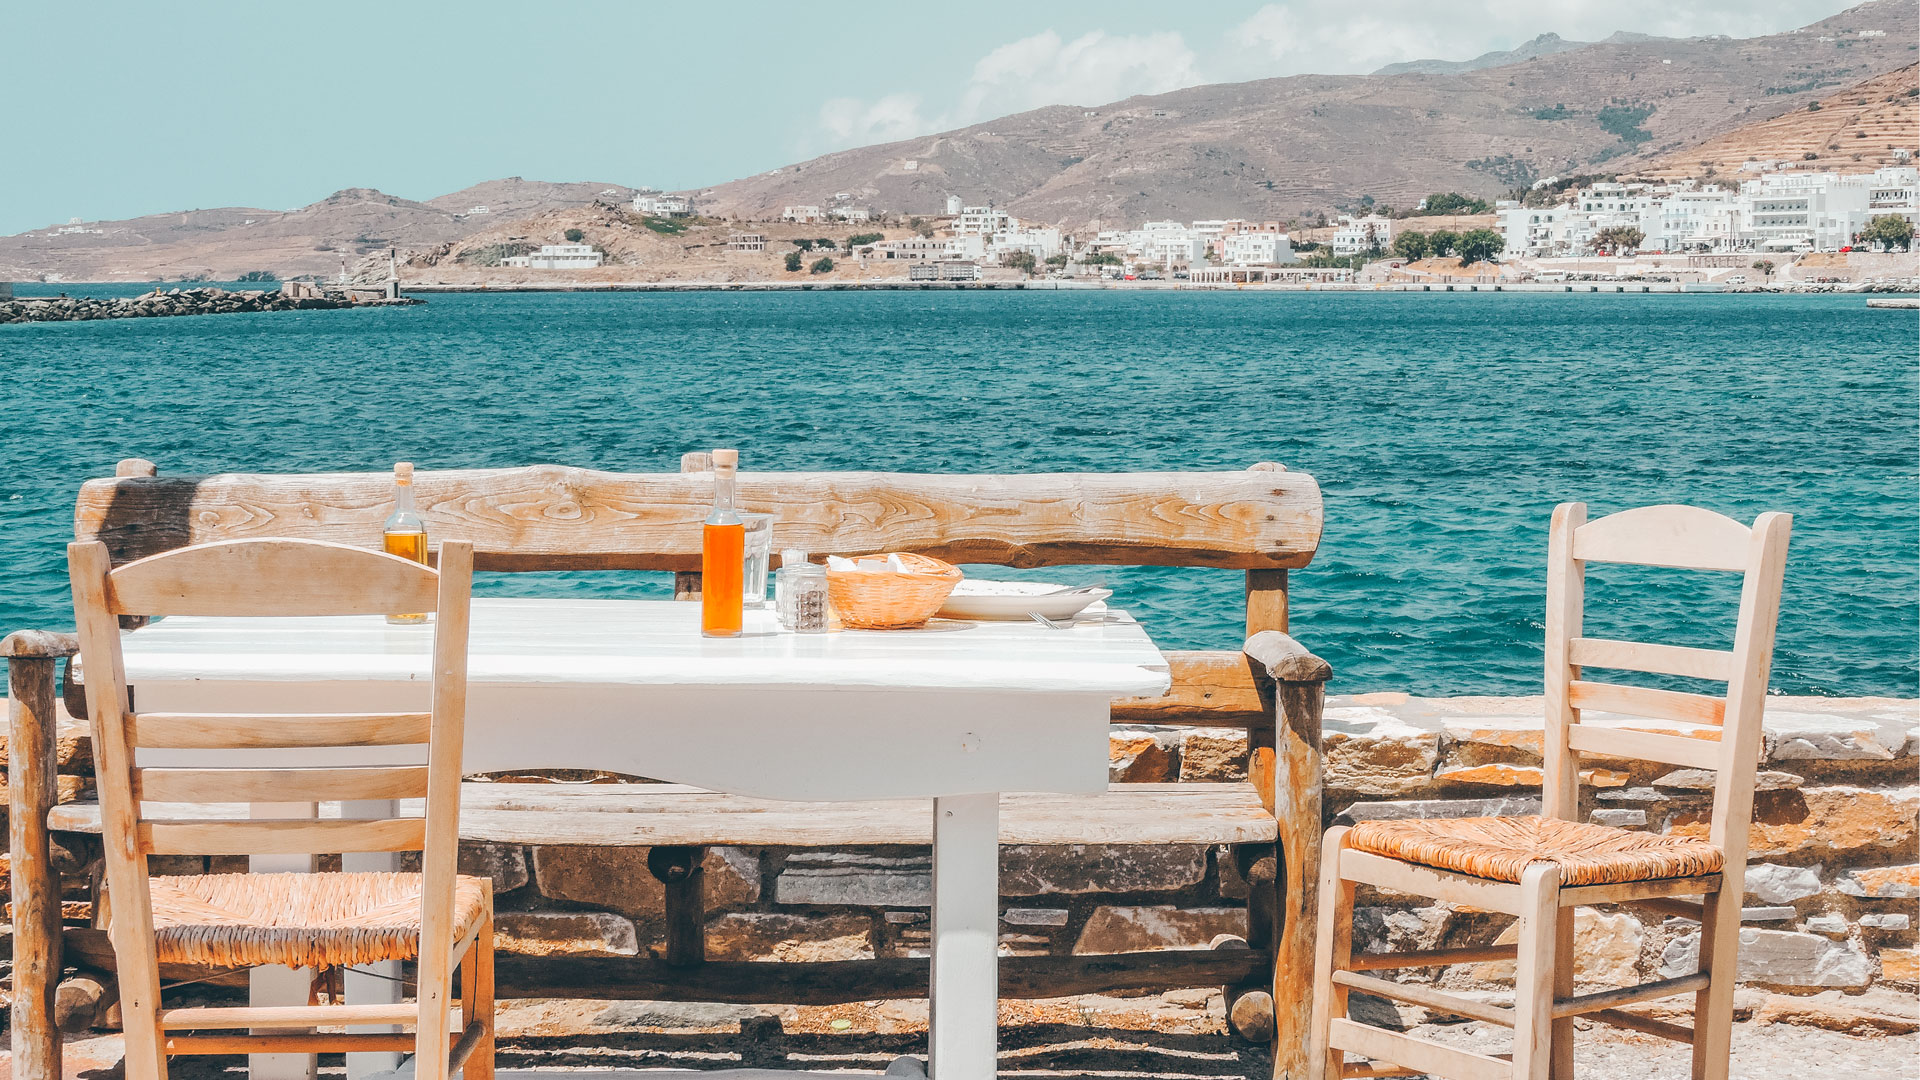 A culinary tour of Tinos includes exploring the island's unique landscape and villages